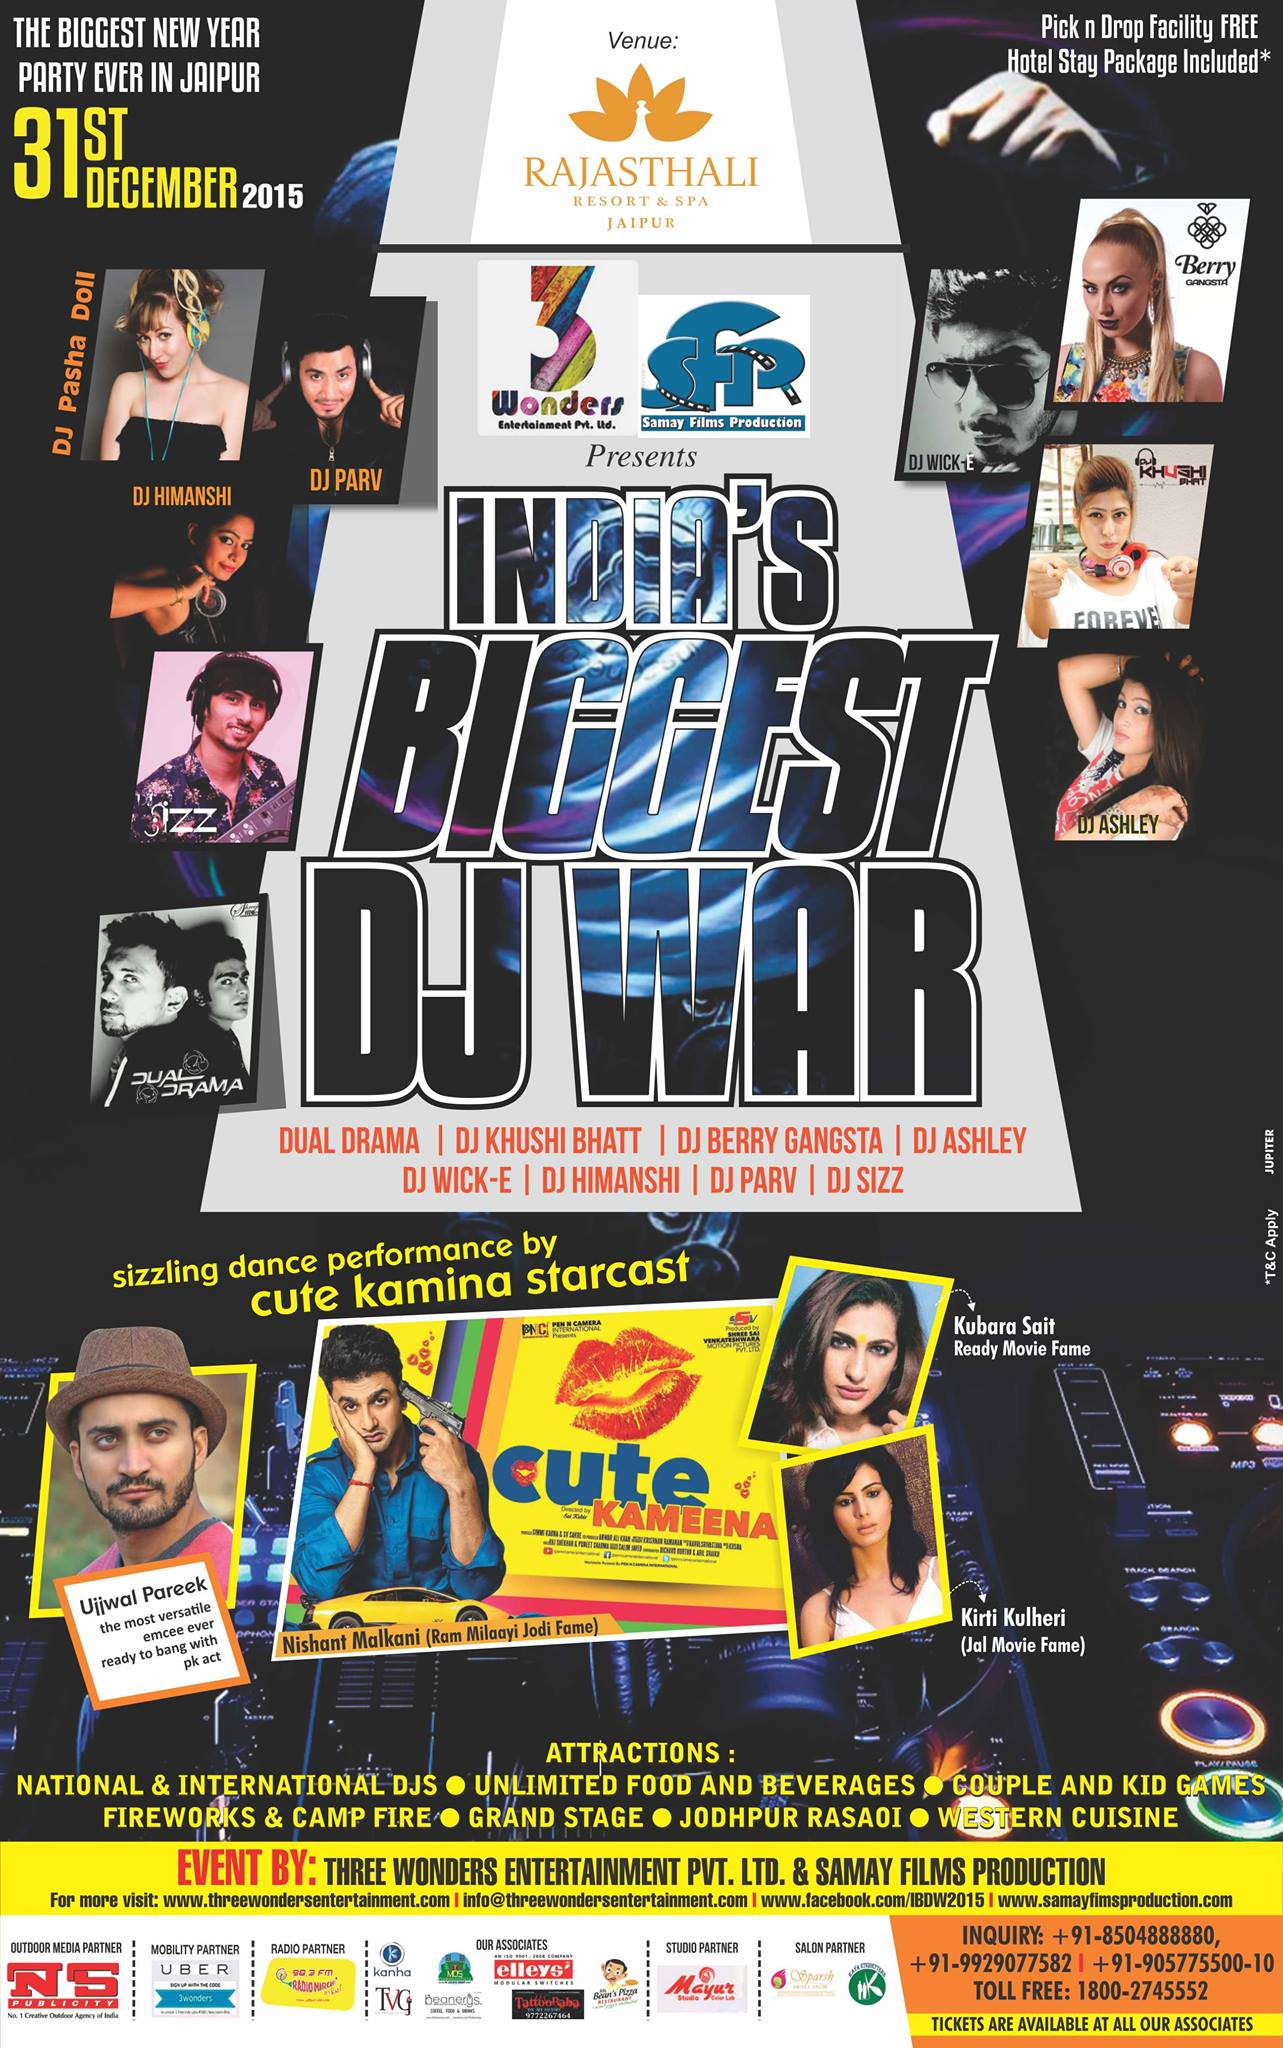 The Biggest New year party ever in jaipur